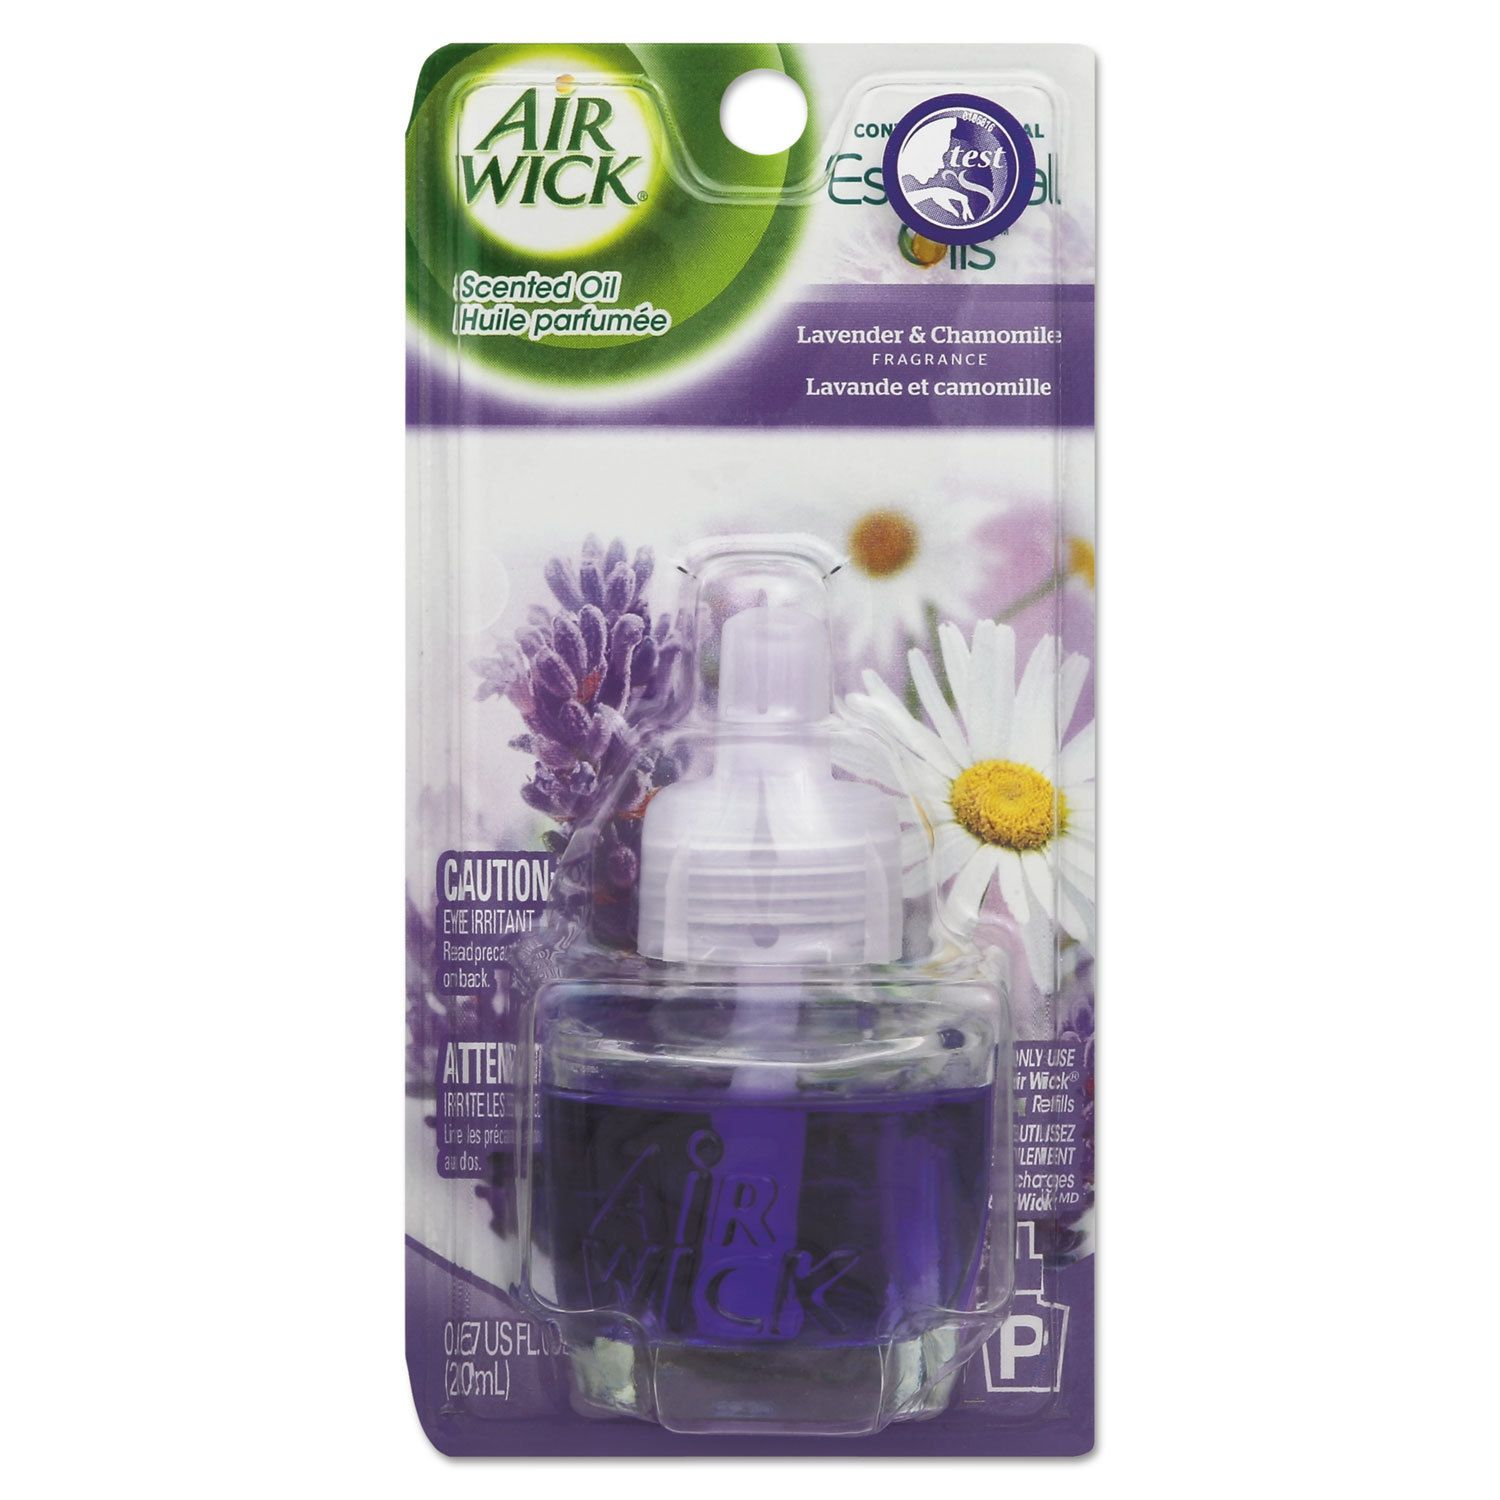 Reckitt Benckiser Air Wick Scented Oil Refill Relaxation